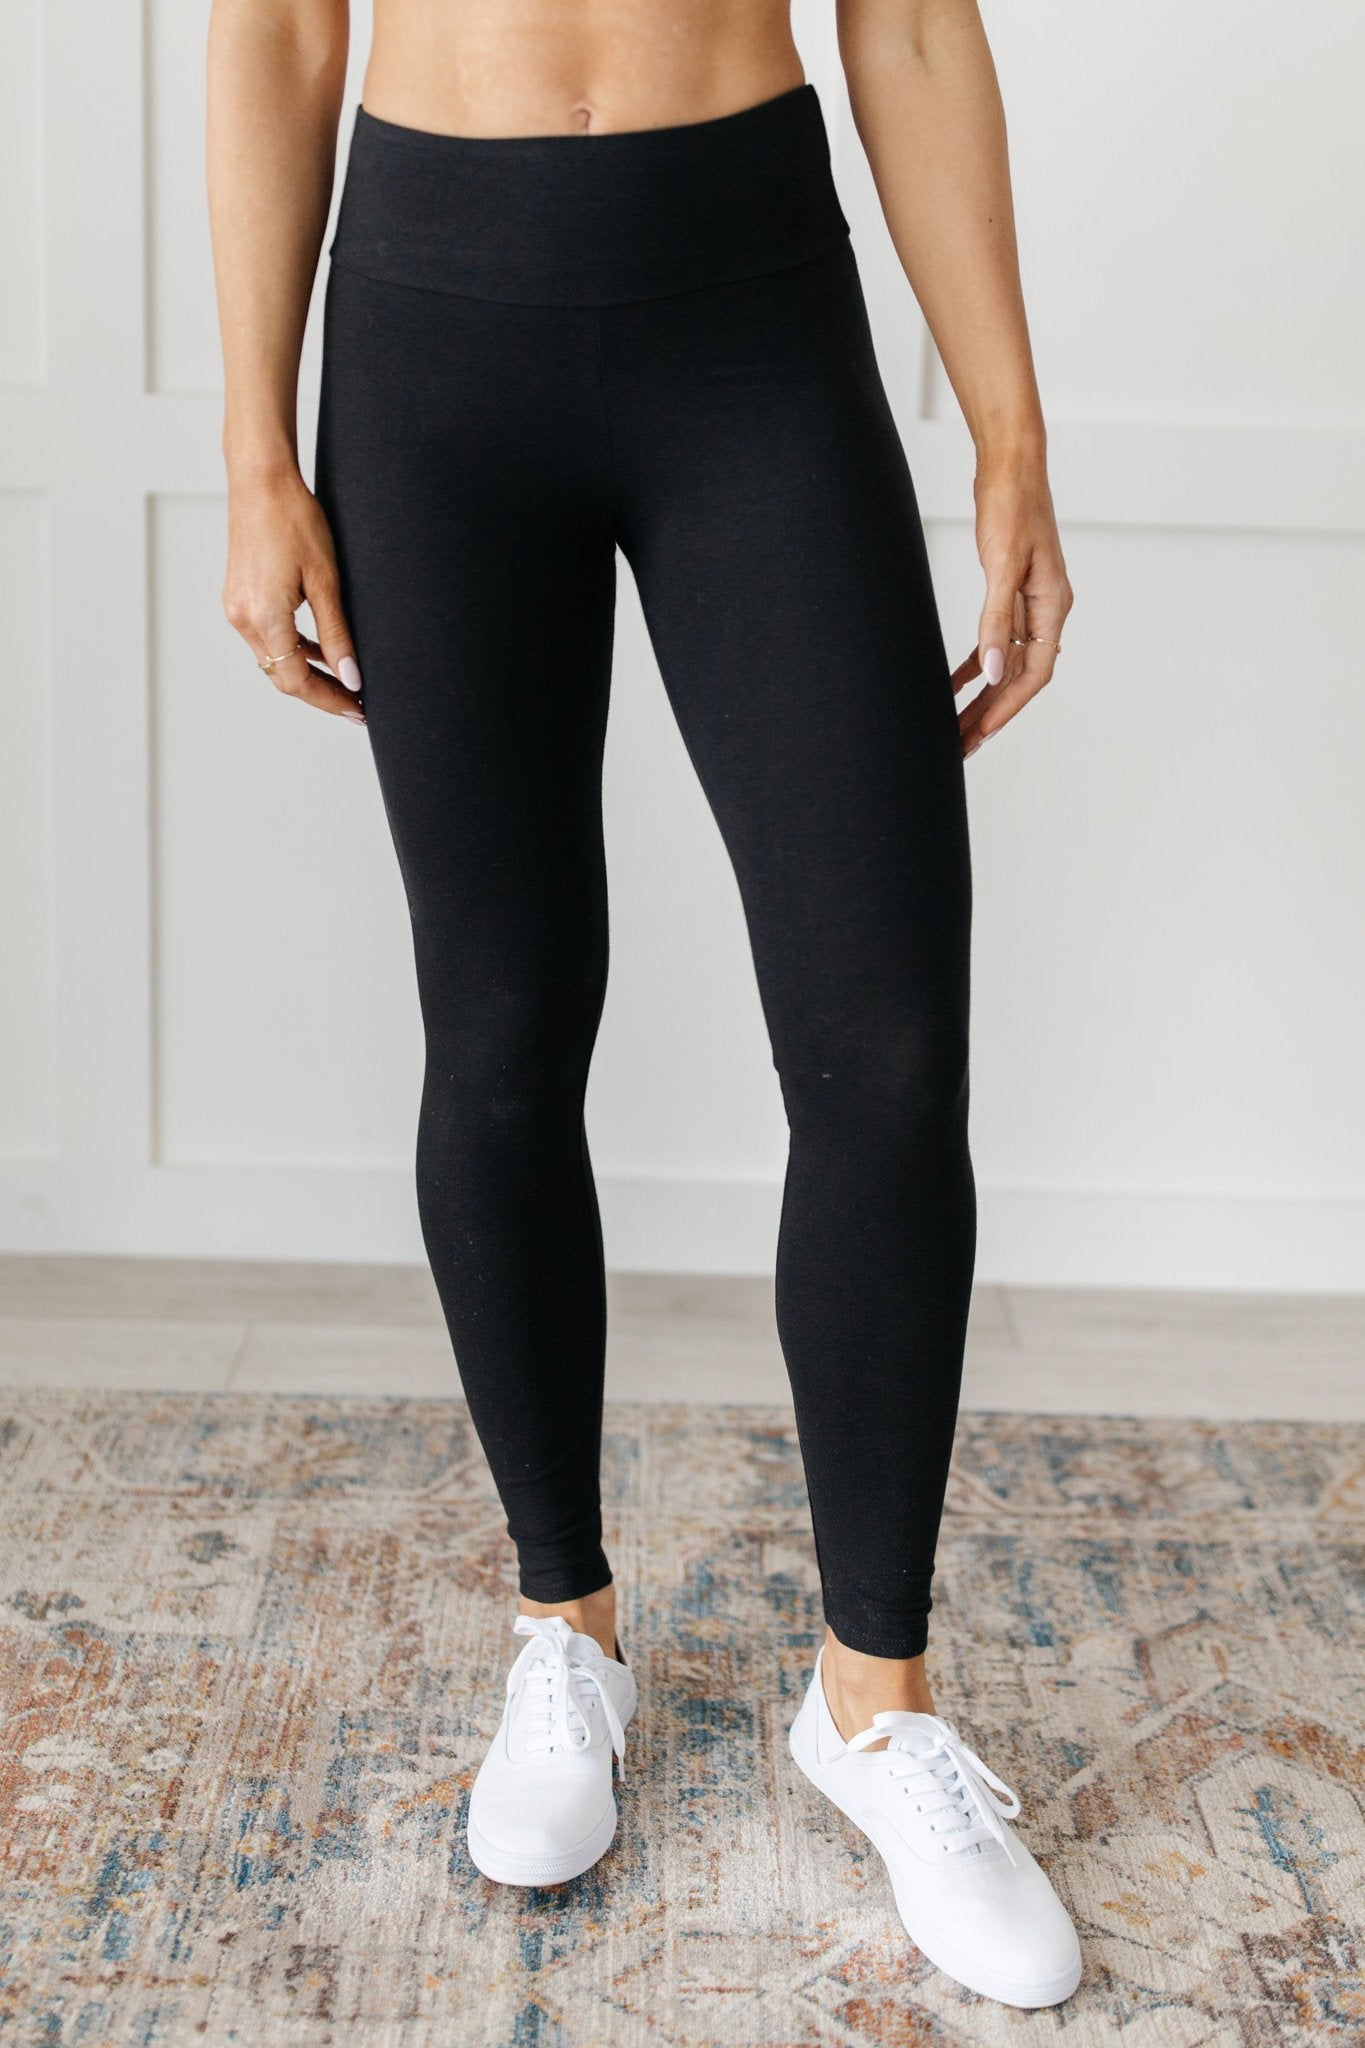 Lucy Lounging Leggings in Black-[option4]-[option5]-[option6]-[option7]-[option8]-Womens-Clothing-Shop